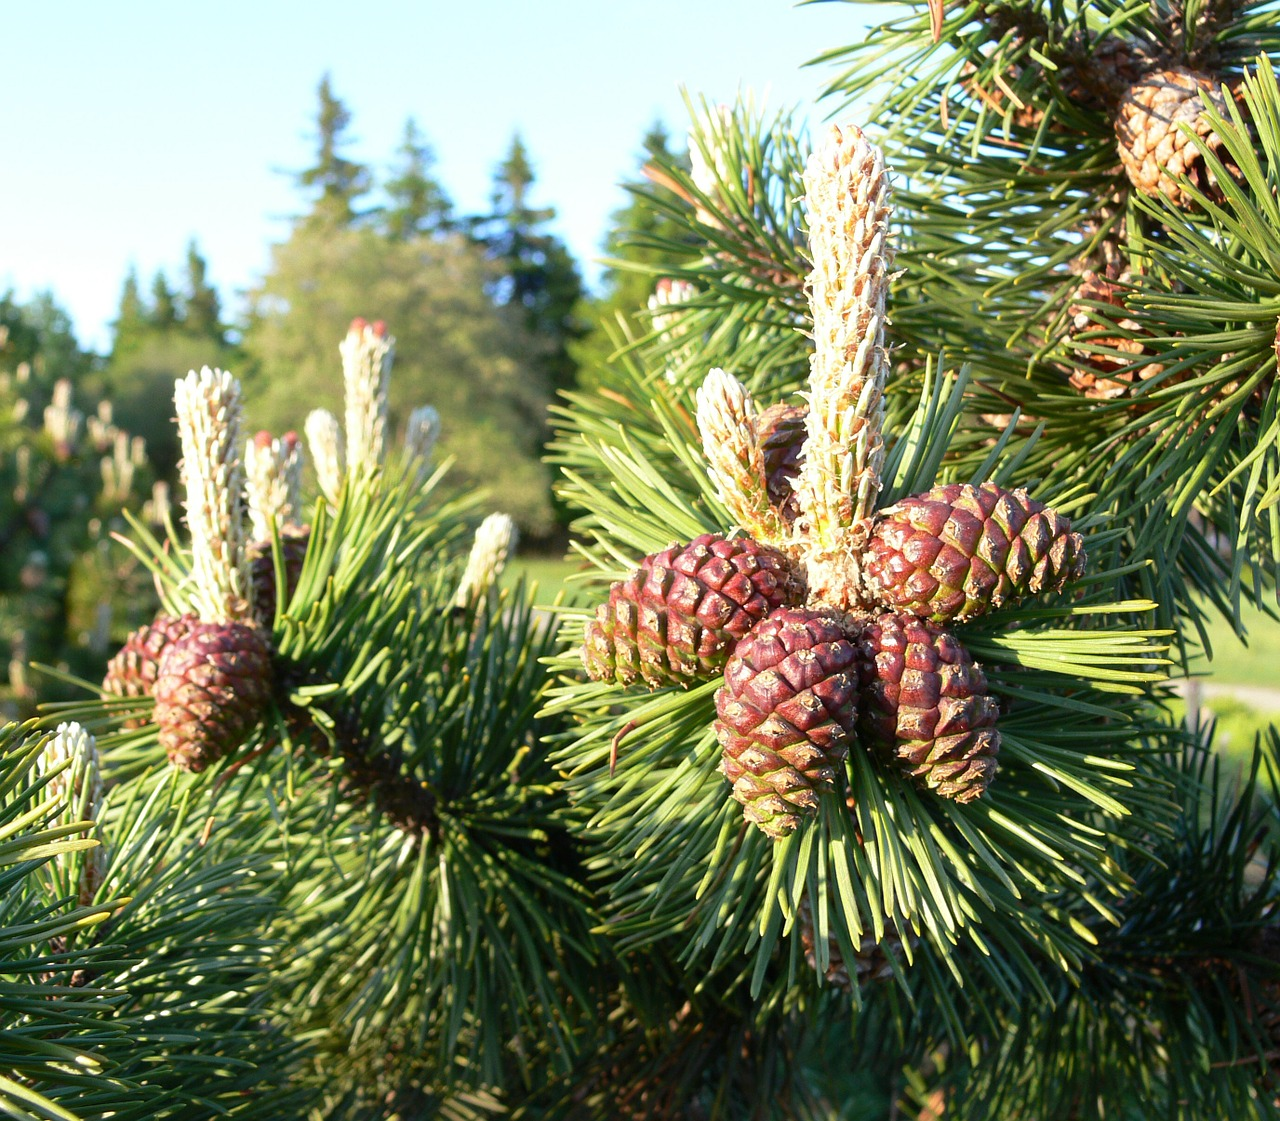 Loblolly pine tree for sale